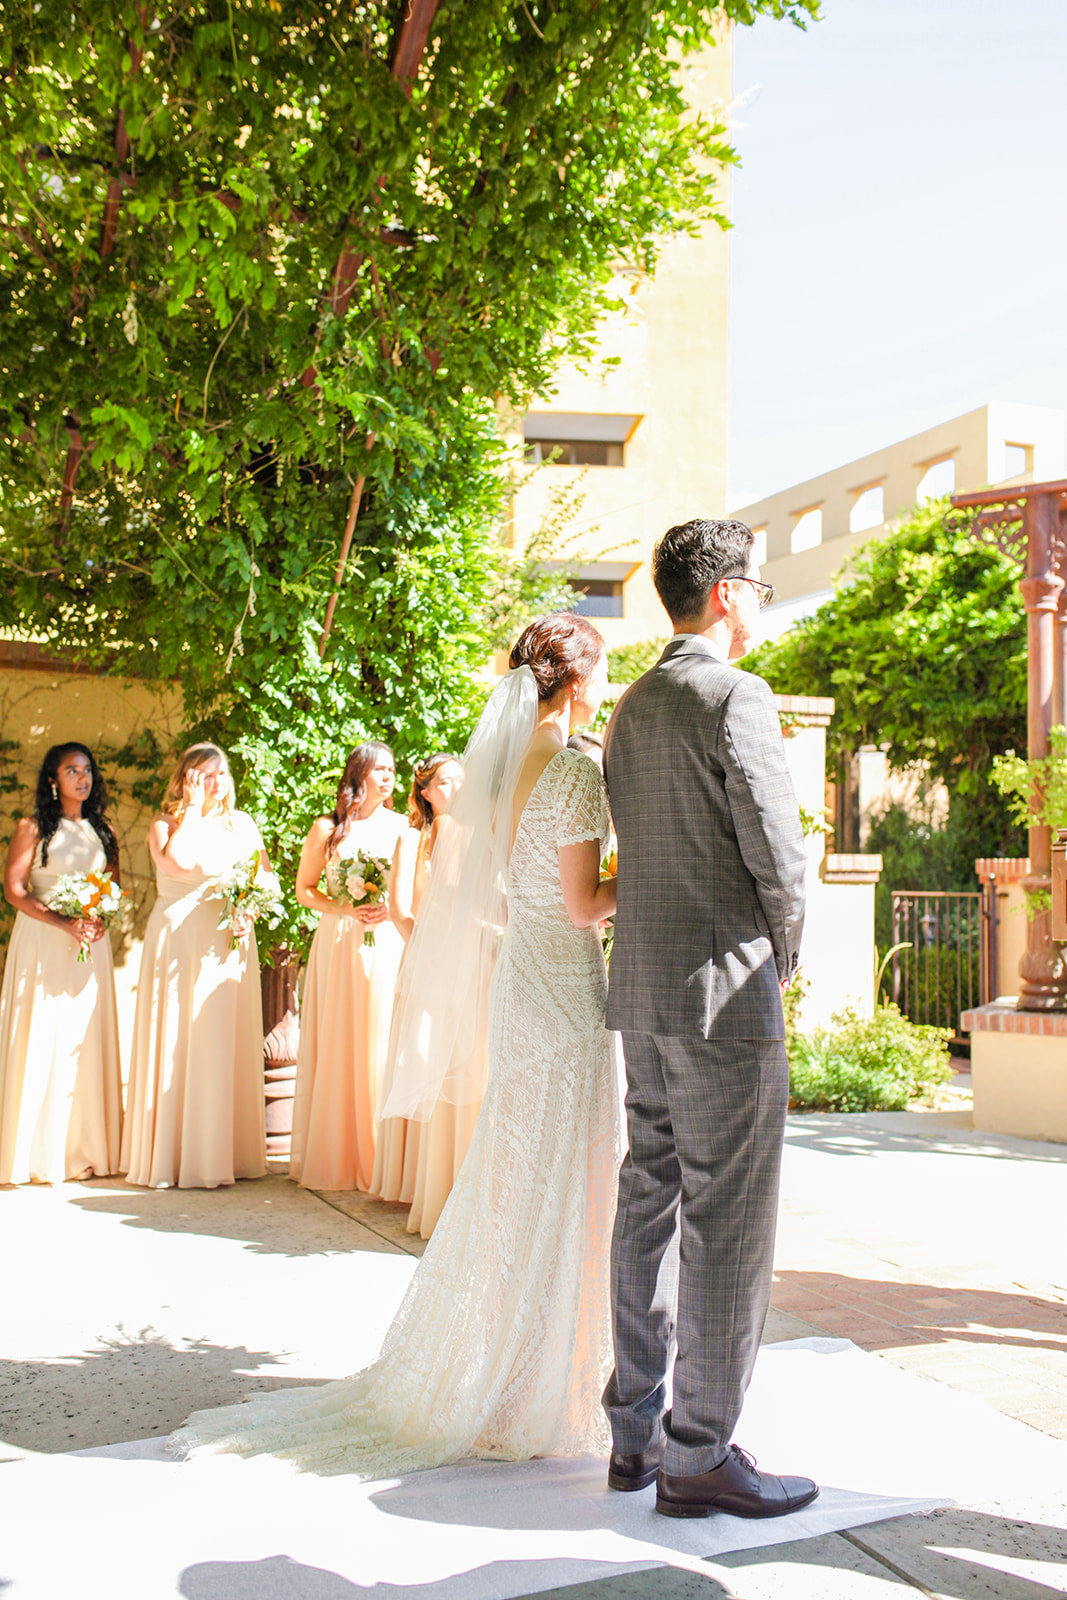 Albuquerque Wedding Photographer_Hotel Albuquerque_www.tylerbrooke.com_Kate Kauffman_092